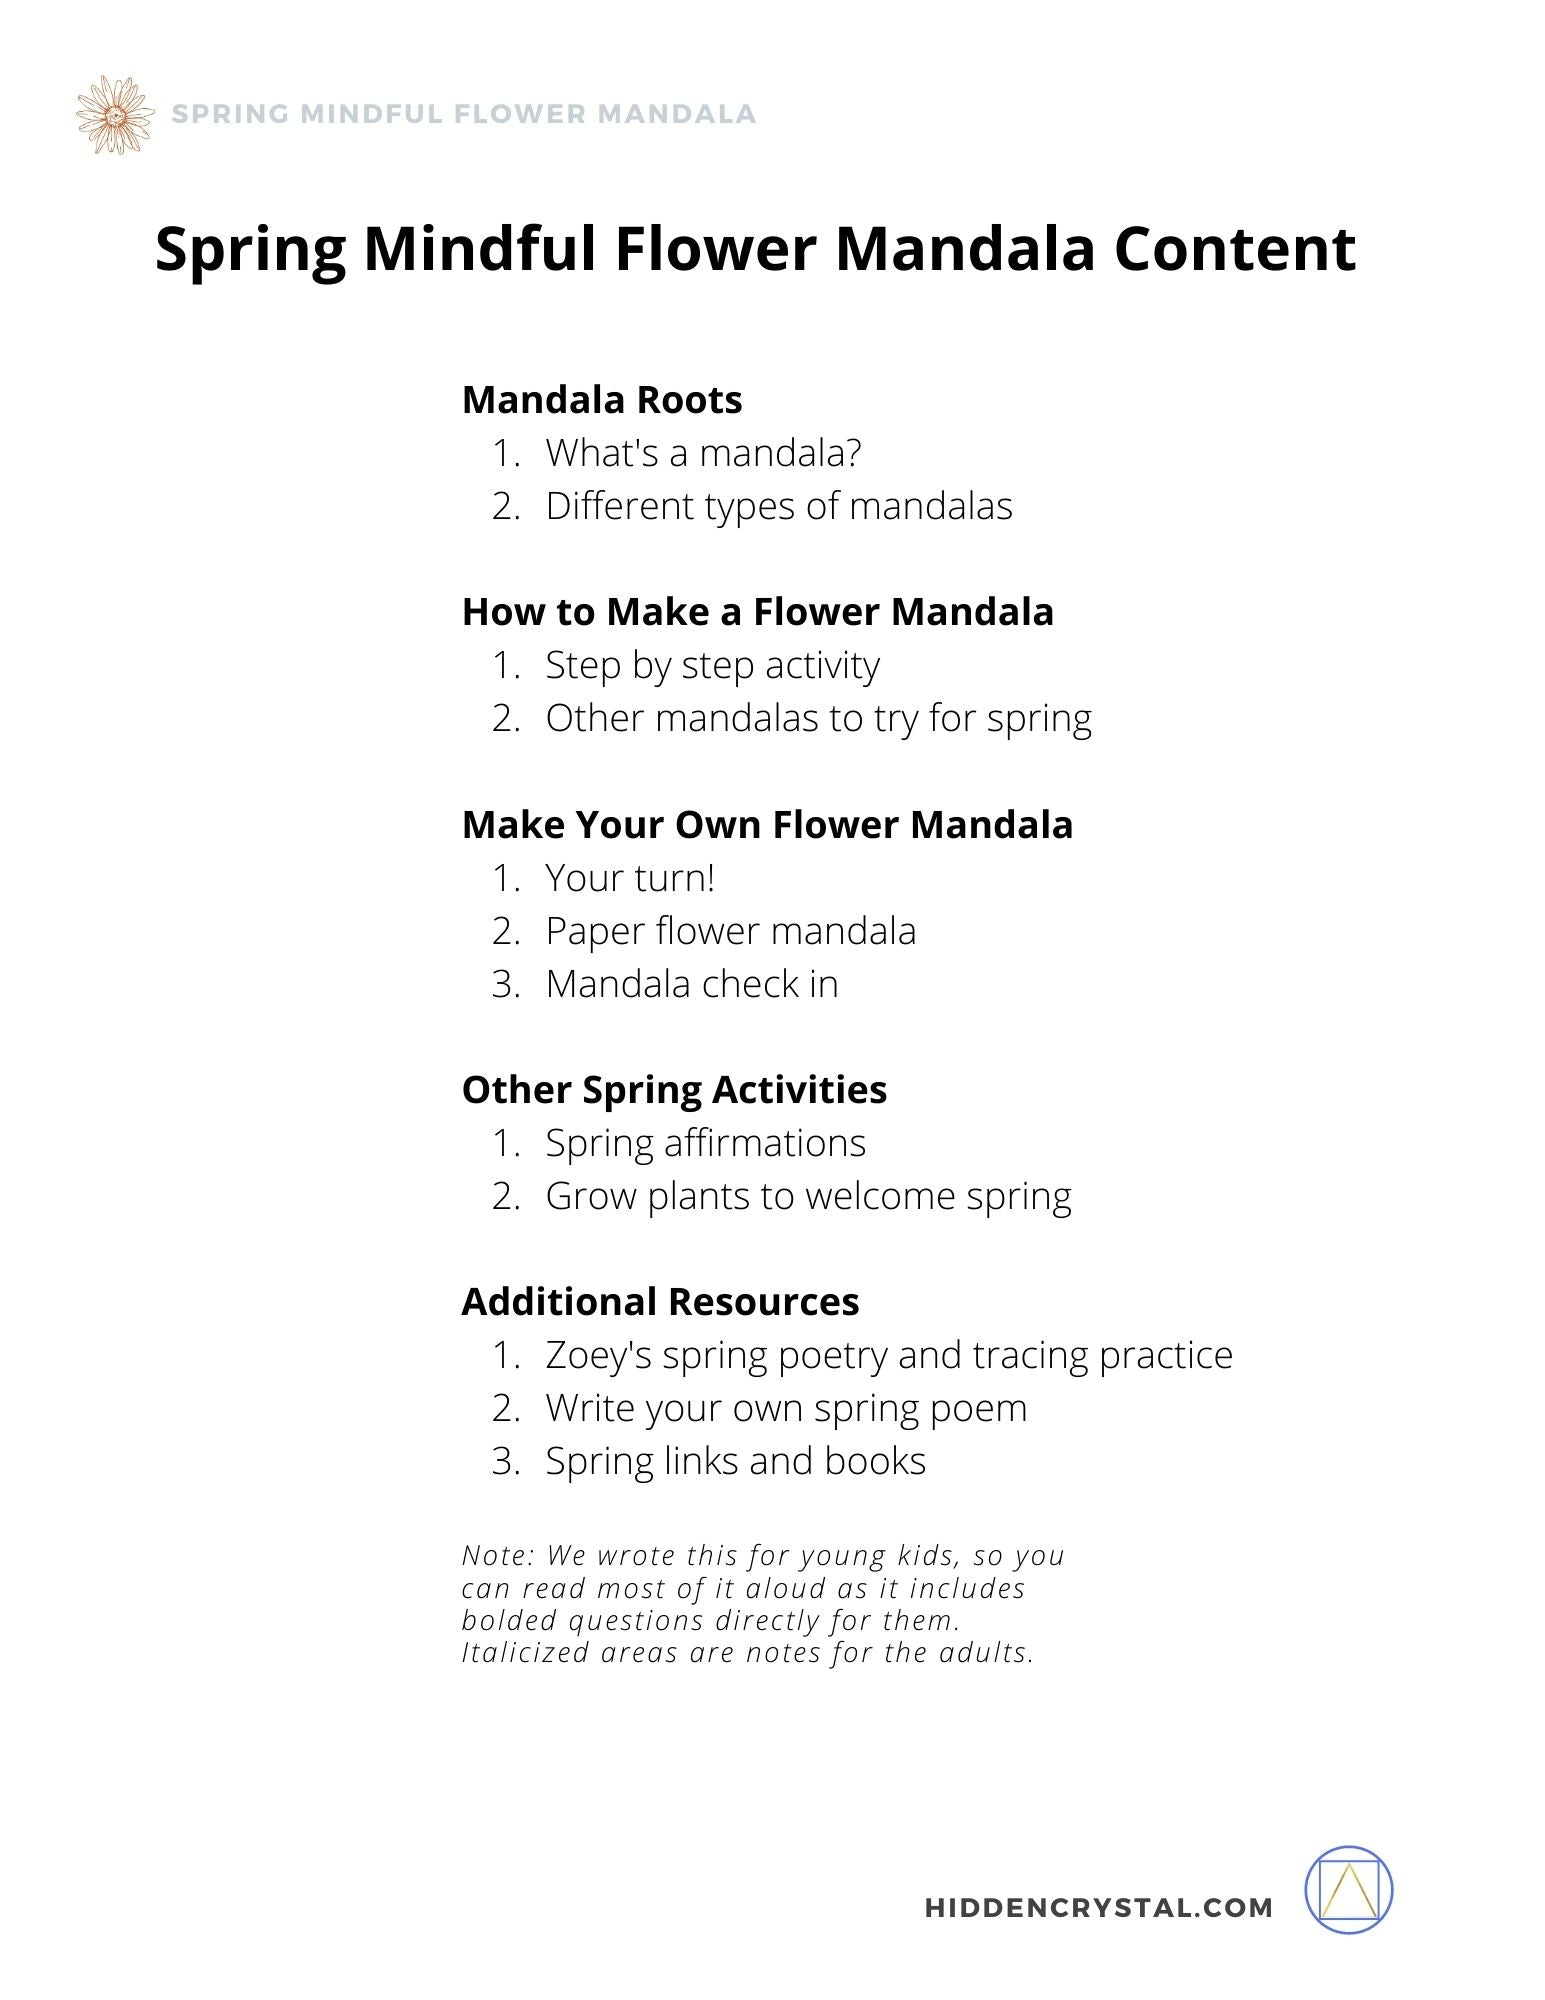 Spring Mindful Flower Mandala (Family Activity): Digital Download